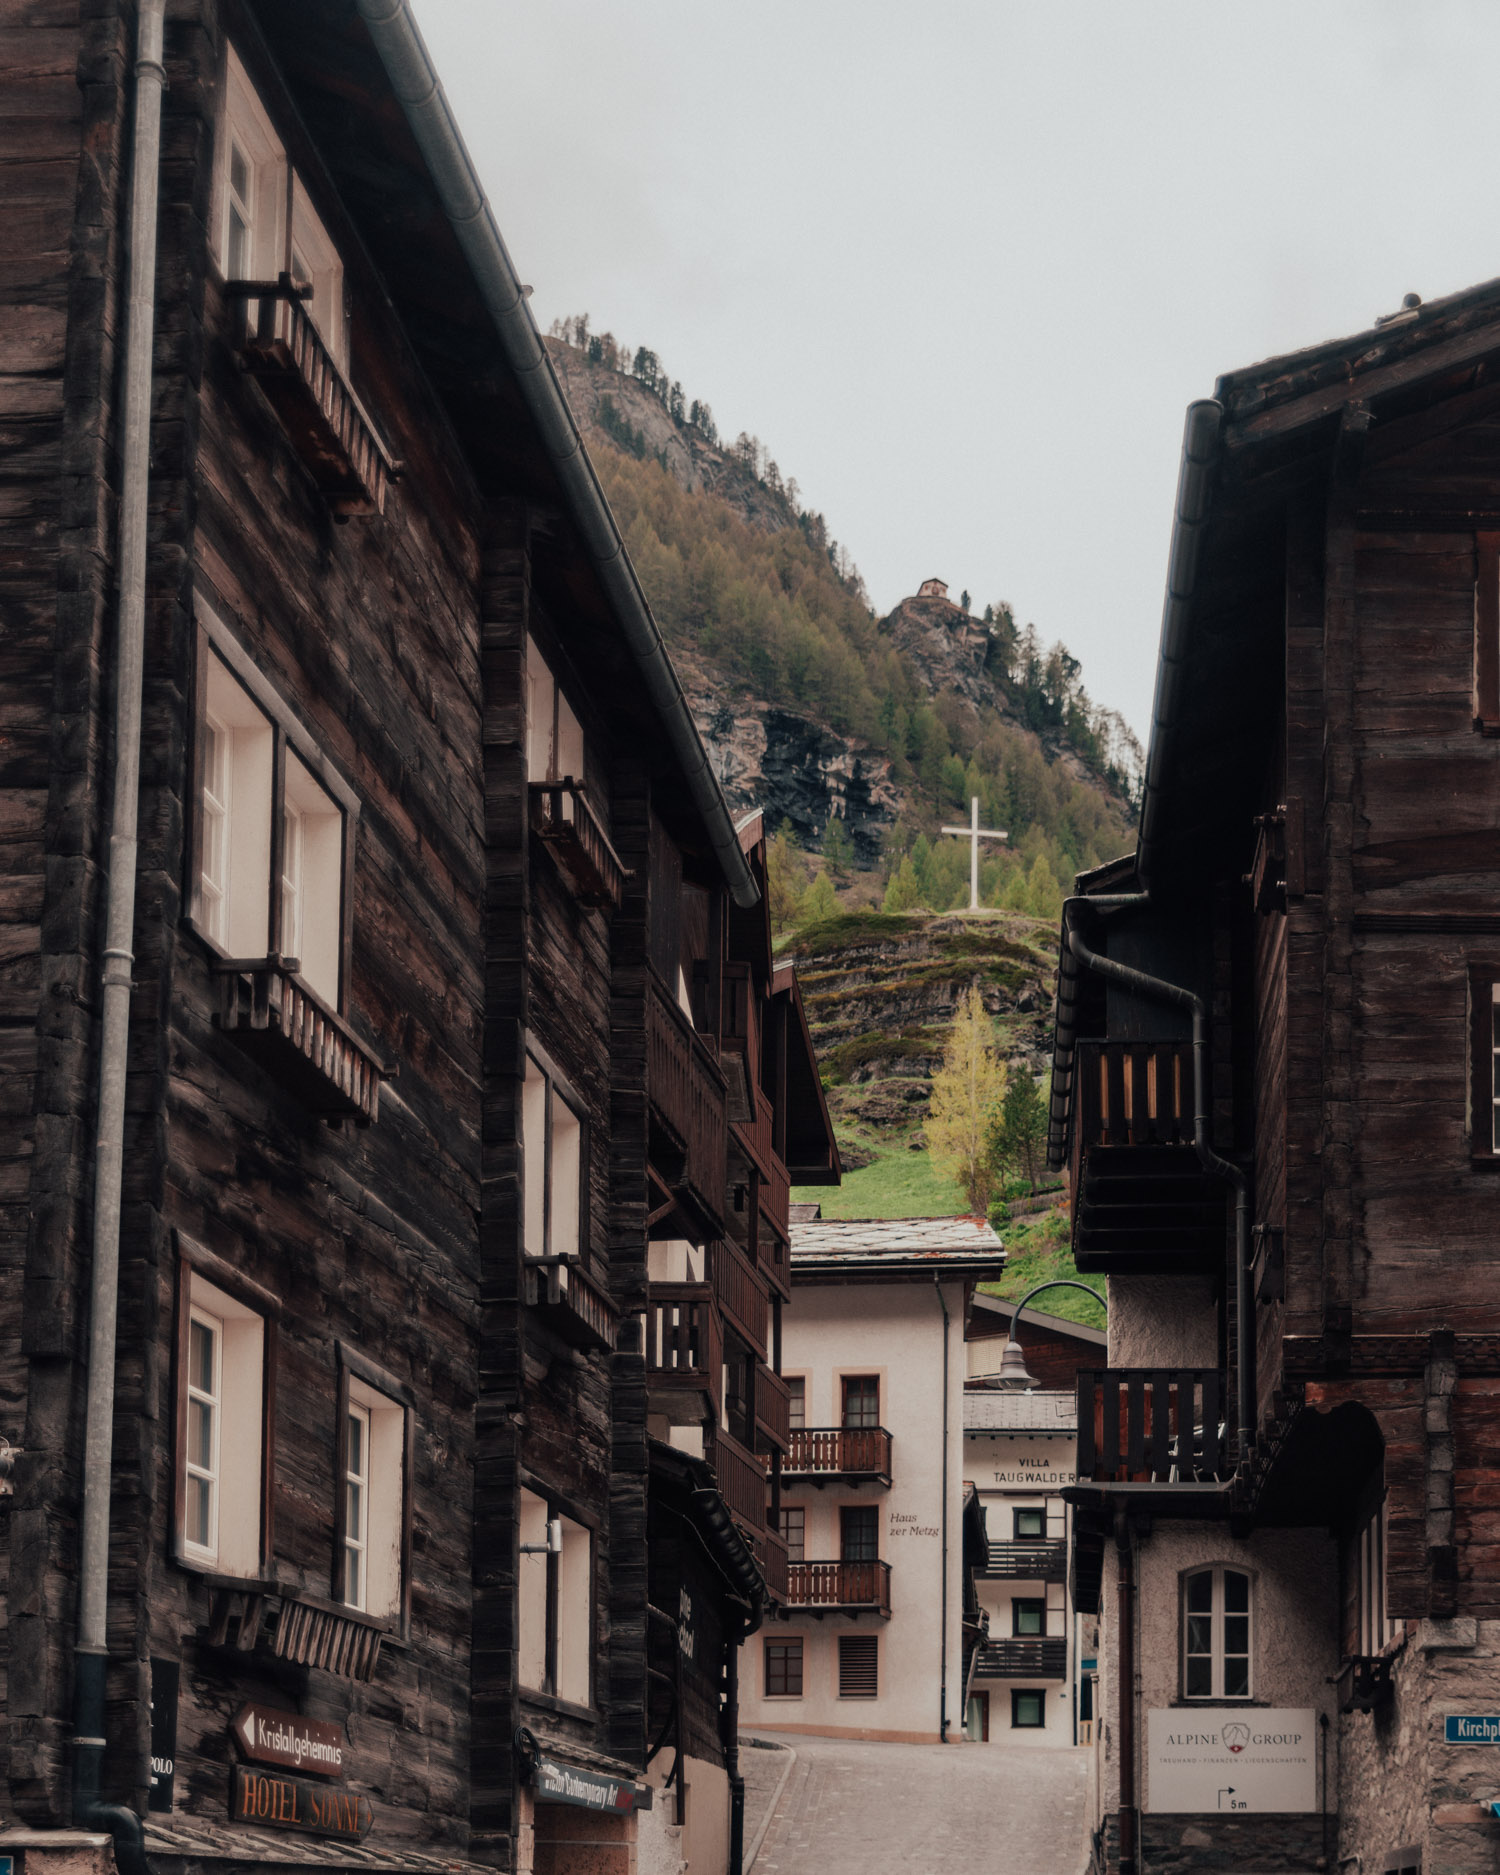 Old part of the village in Zermatt